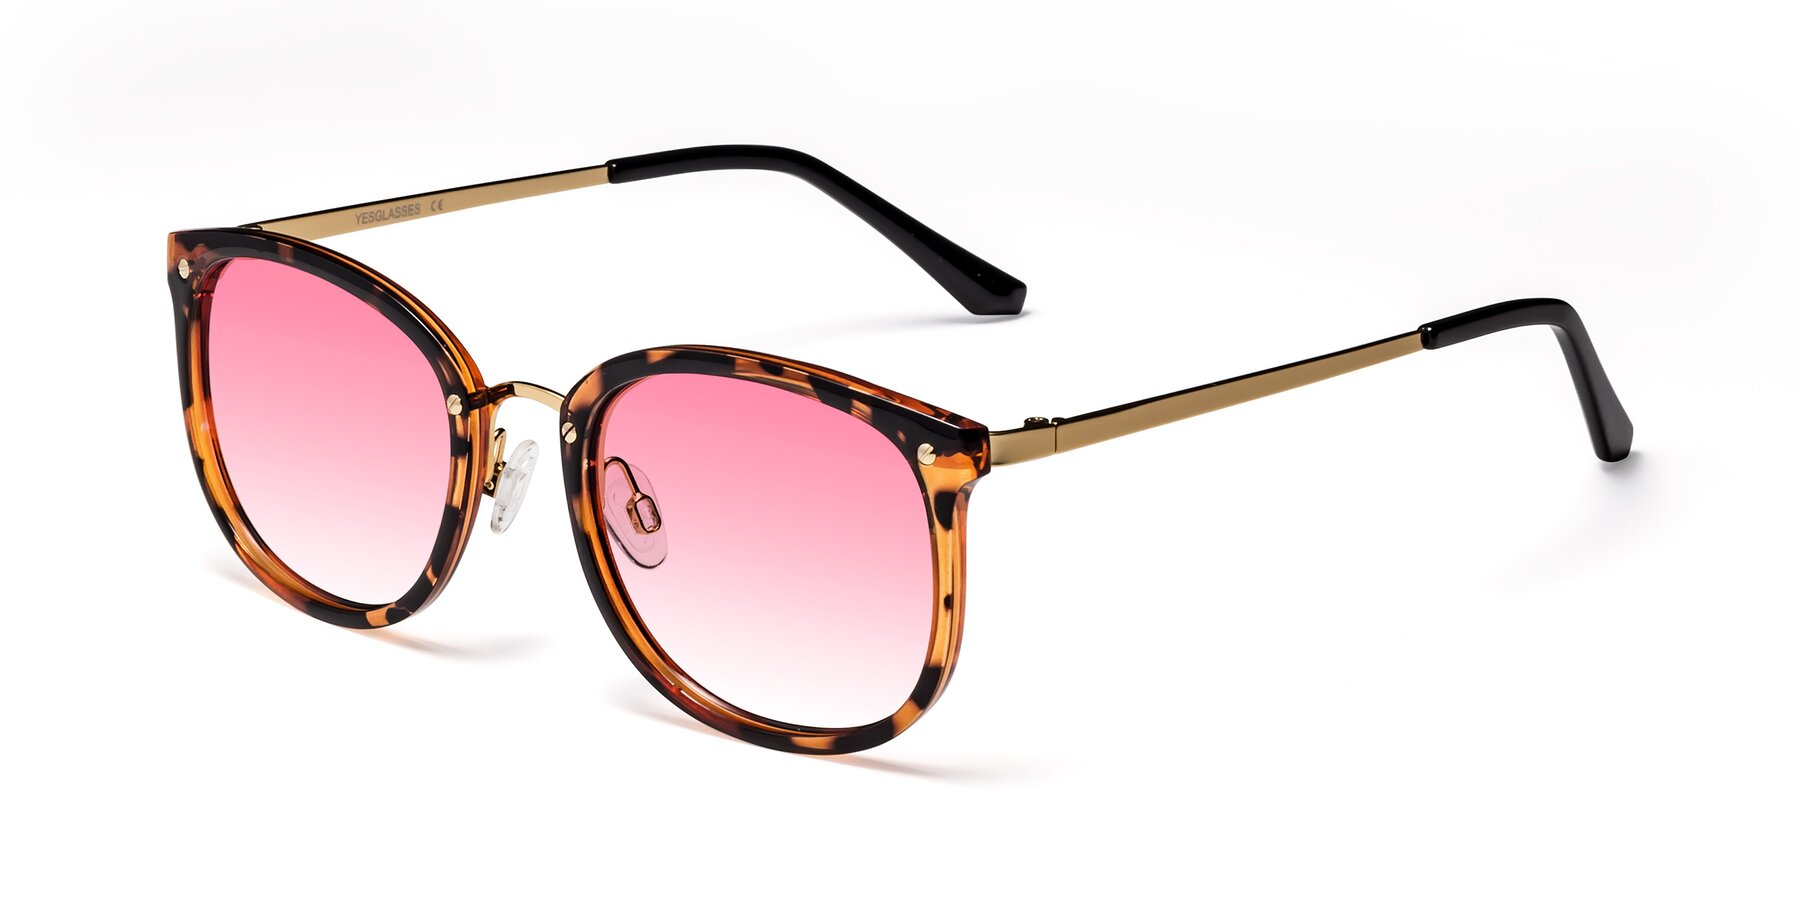 Angle of Timeless in Tortoise-Golden with Pink Gradient Lenses